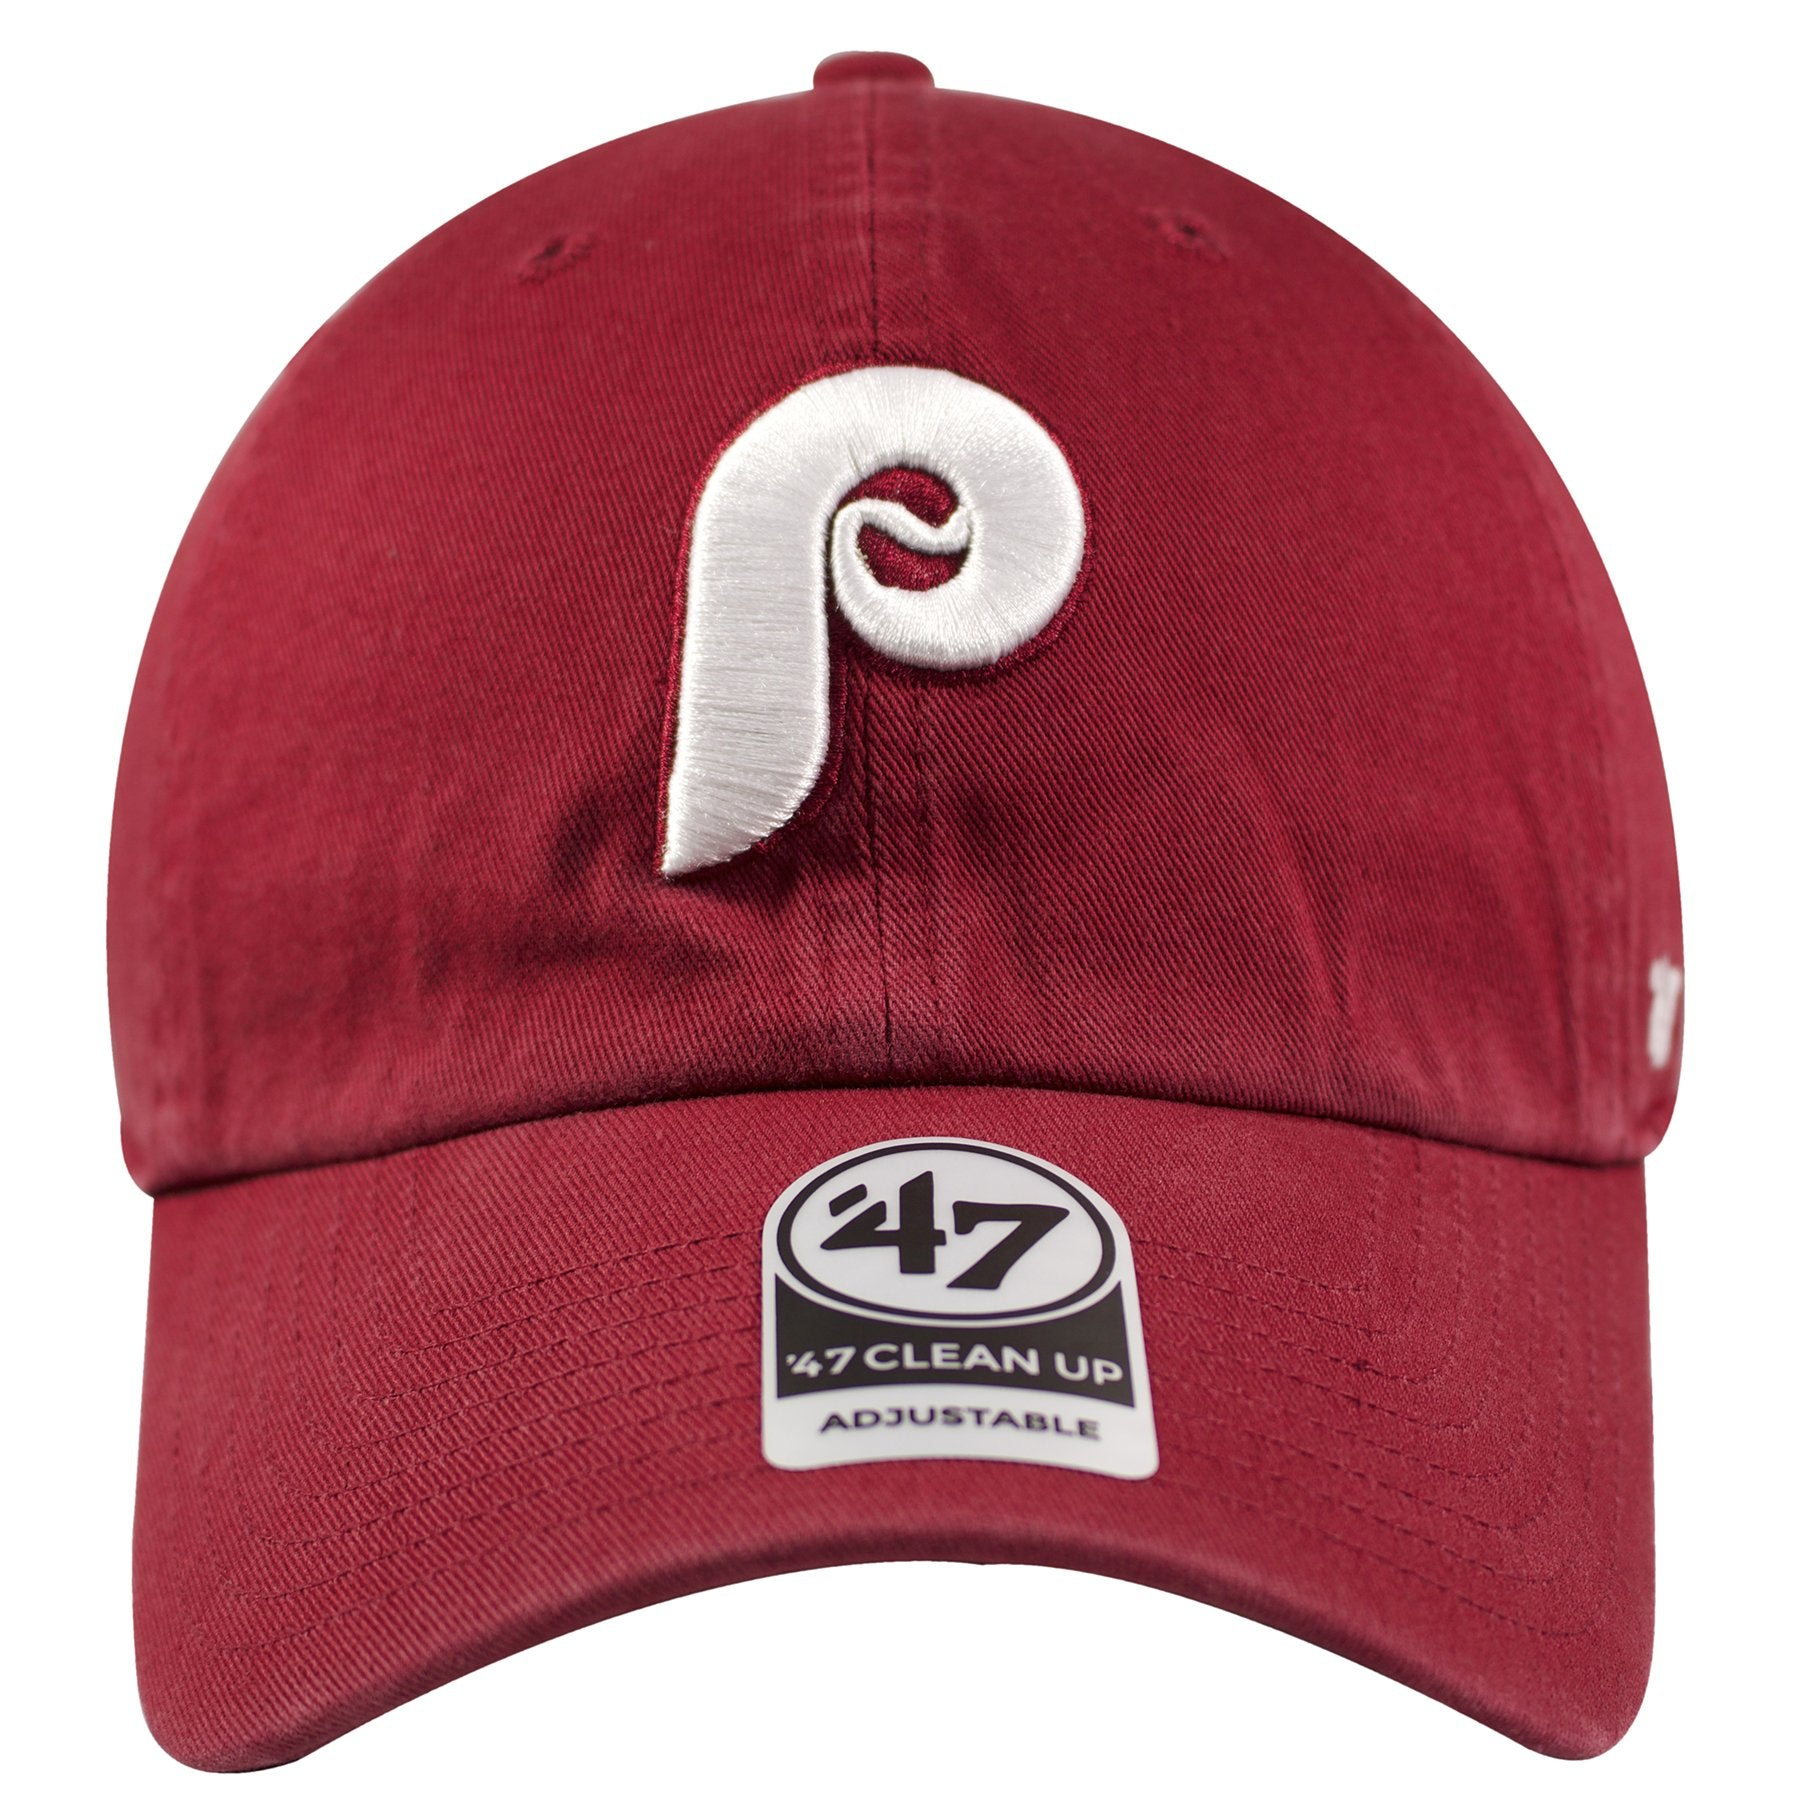 2b67c2ef7b8 ... italy on the front of the philadelphia phillies vintage maroon  cooperstown dad hat is a white